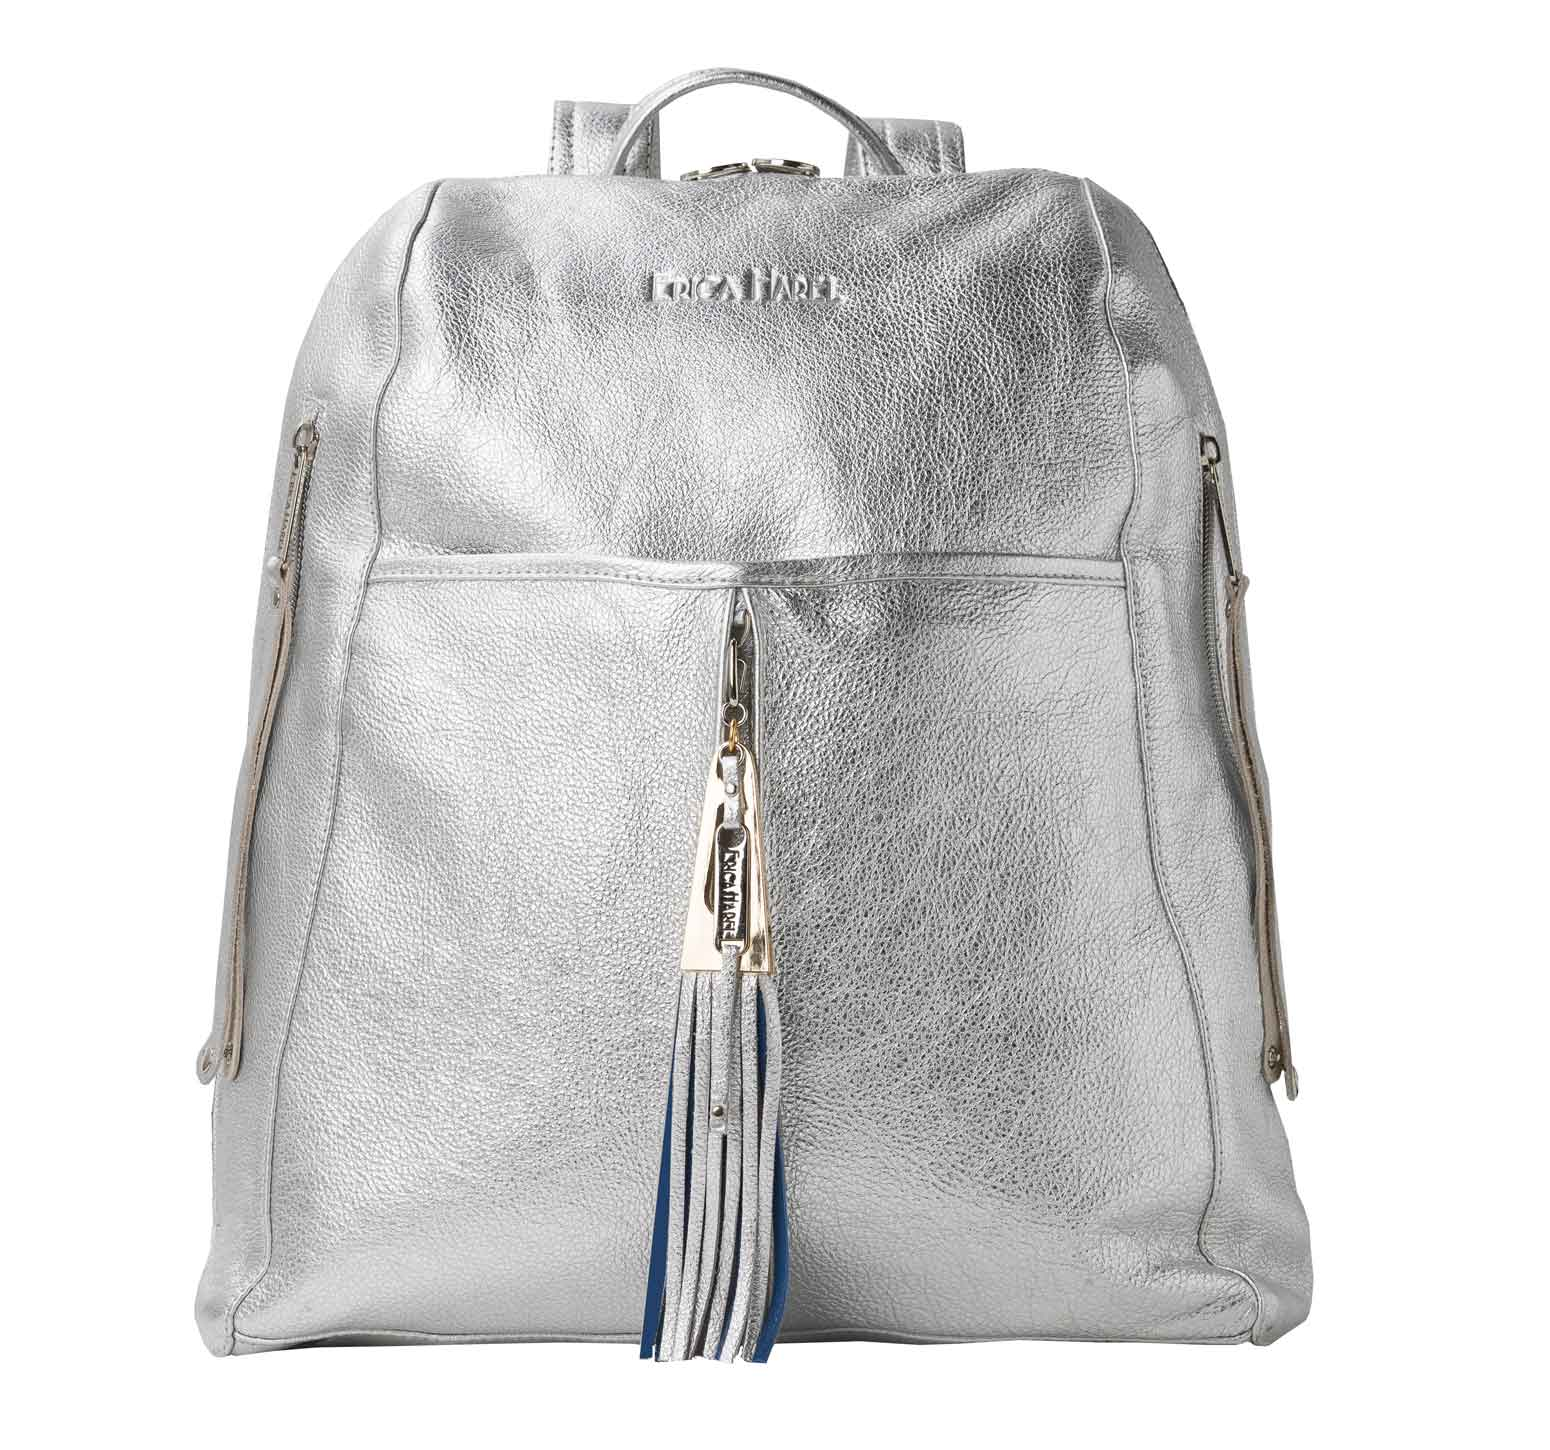 metallic silver leather backpack